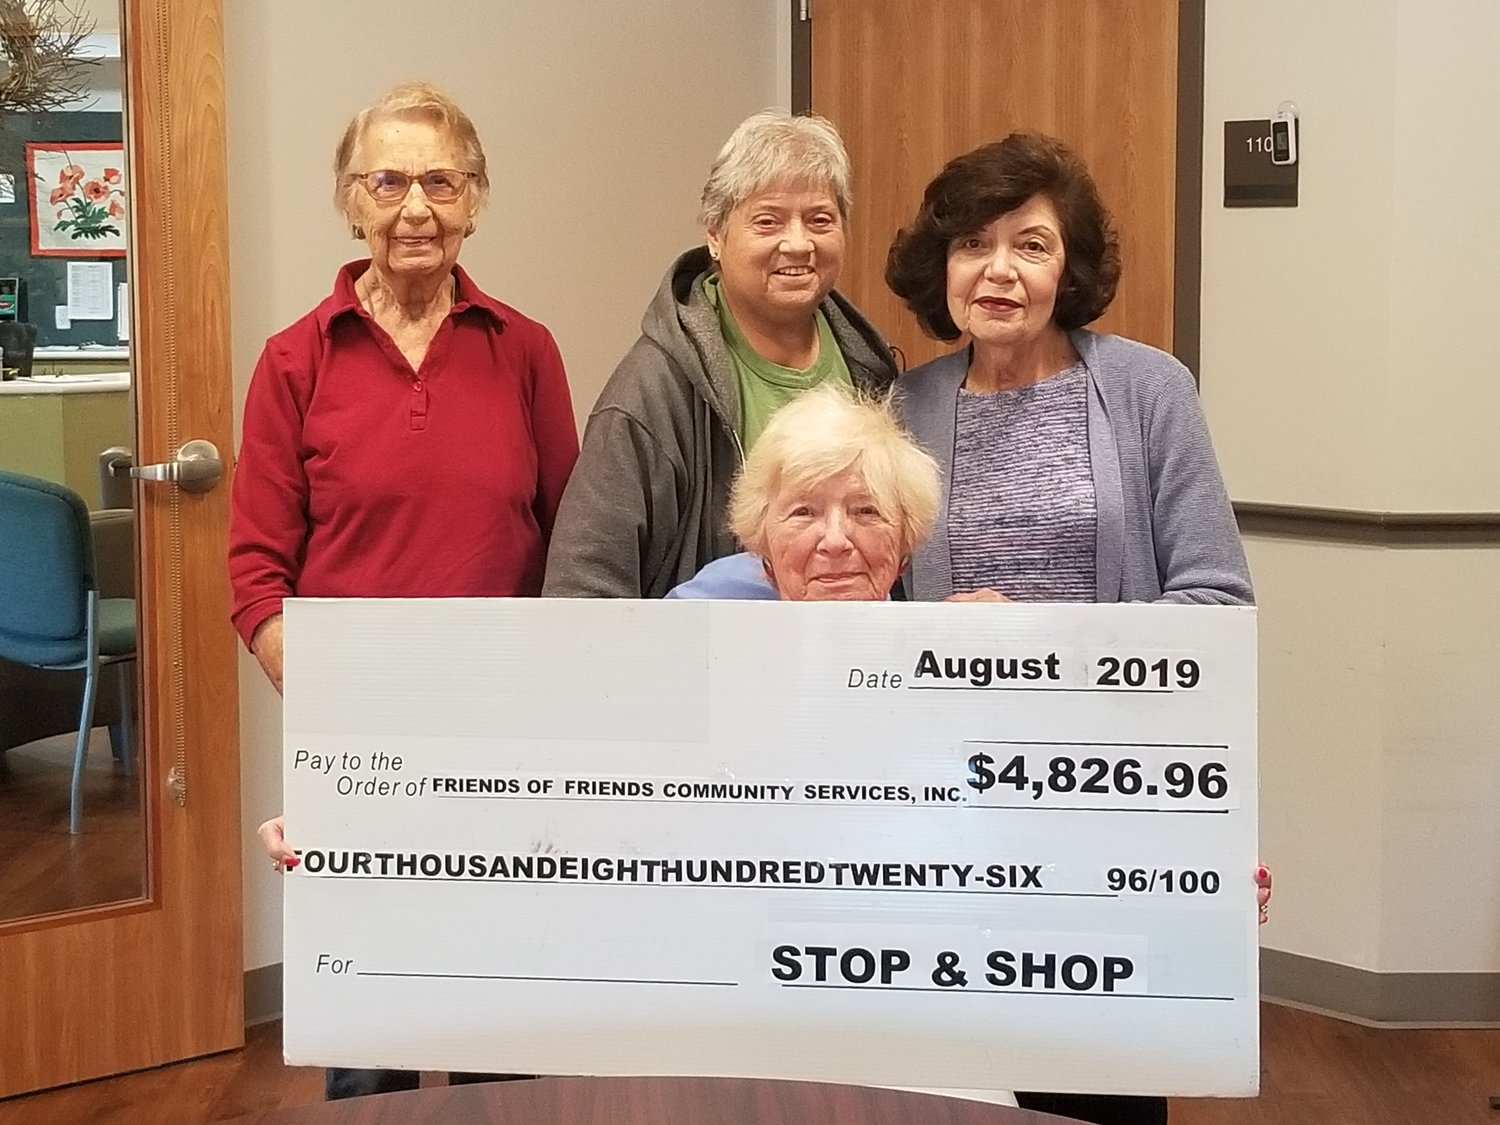 Center: Edith Krekorian President, left to right Bev Hart committee member, Beverly Della Grotta Treasurer & Judy Santoro Secretary, accepting a very generous donation to Friends of Friends Community Services, Inc. in the amount of $4,826.96 from the Stop & Shop Associates & customers on Highland Avenue in Seekonk.  This donation will tremendously help the Seekonk Community through the Human Services Department.